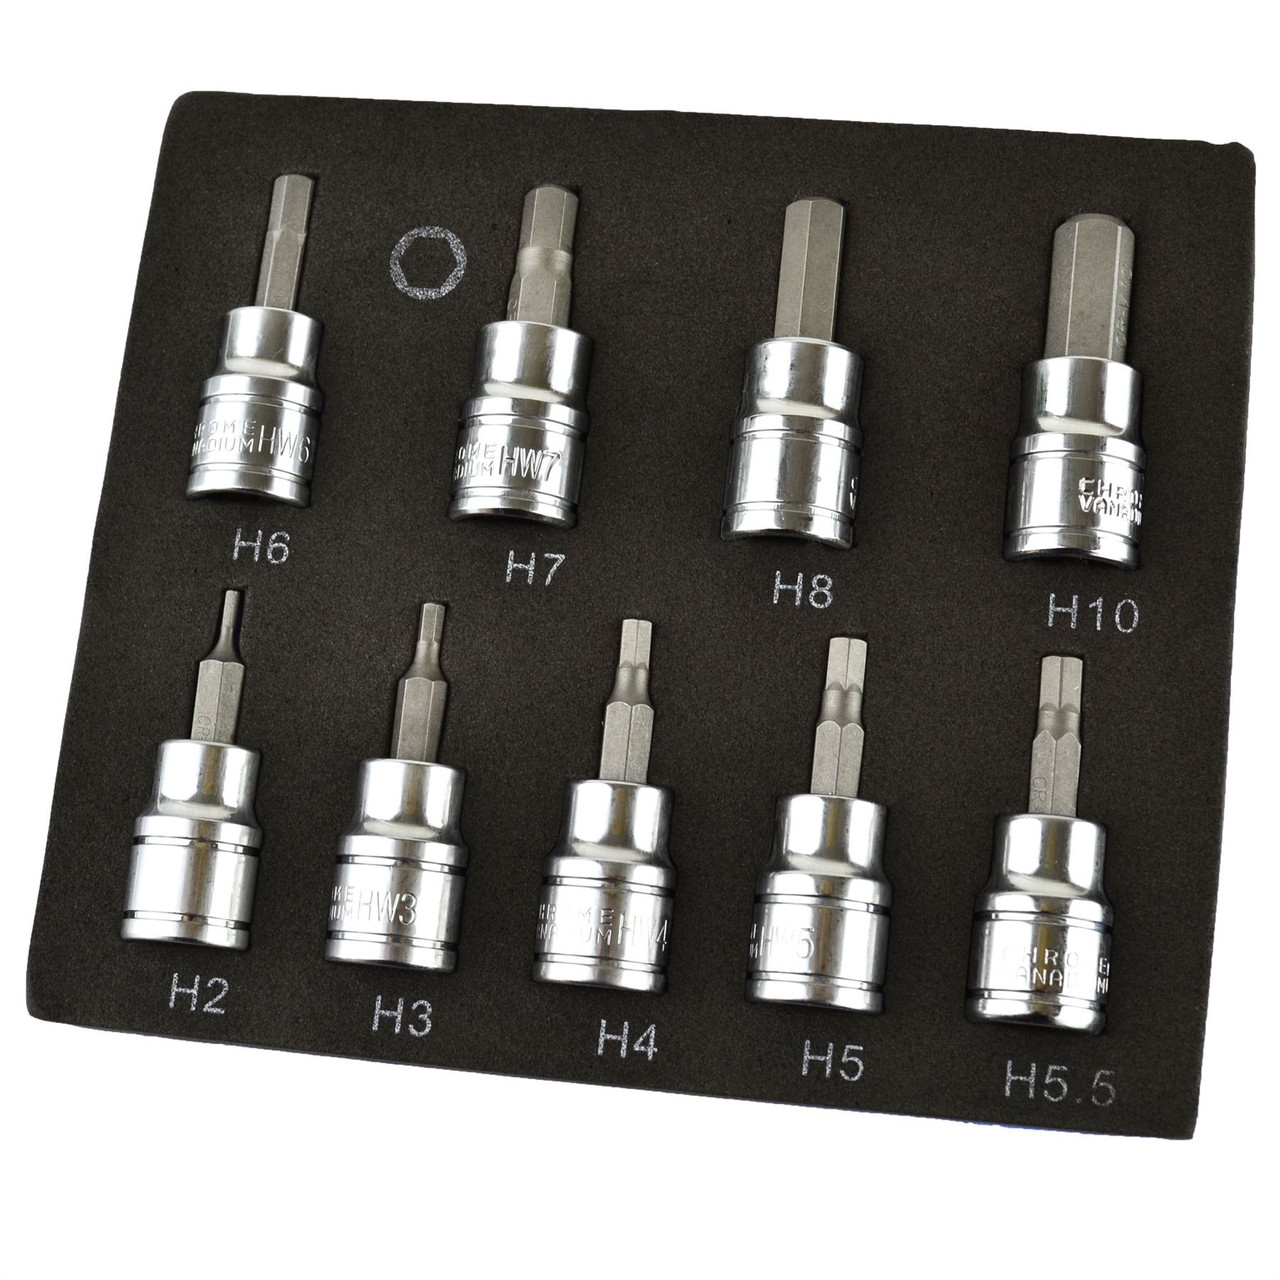 "Hex / Allen Sockets Key Bits 3/8"" Drive 2mm - 10mm BERGEN 9pcs AT730"